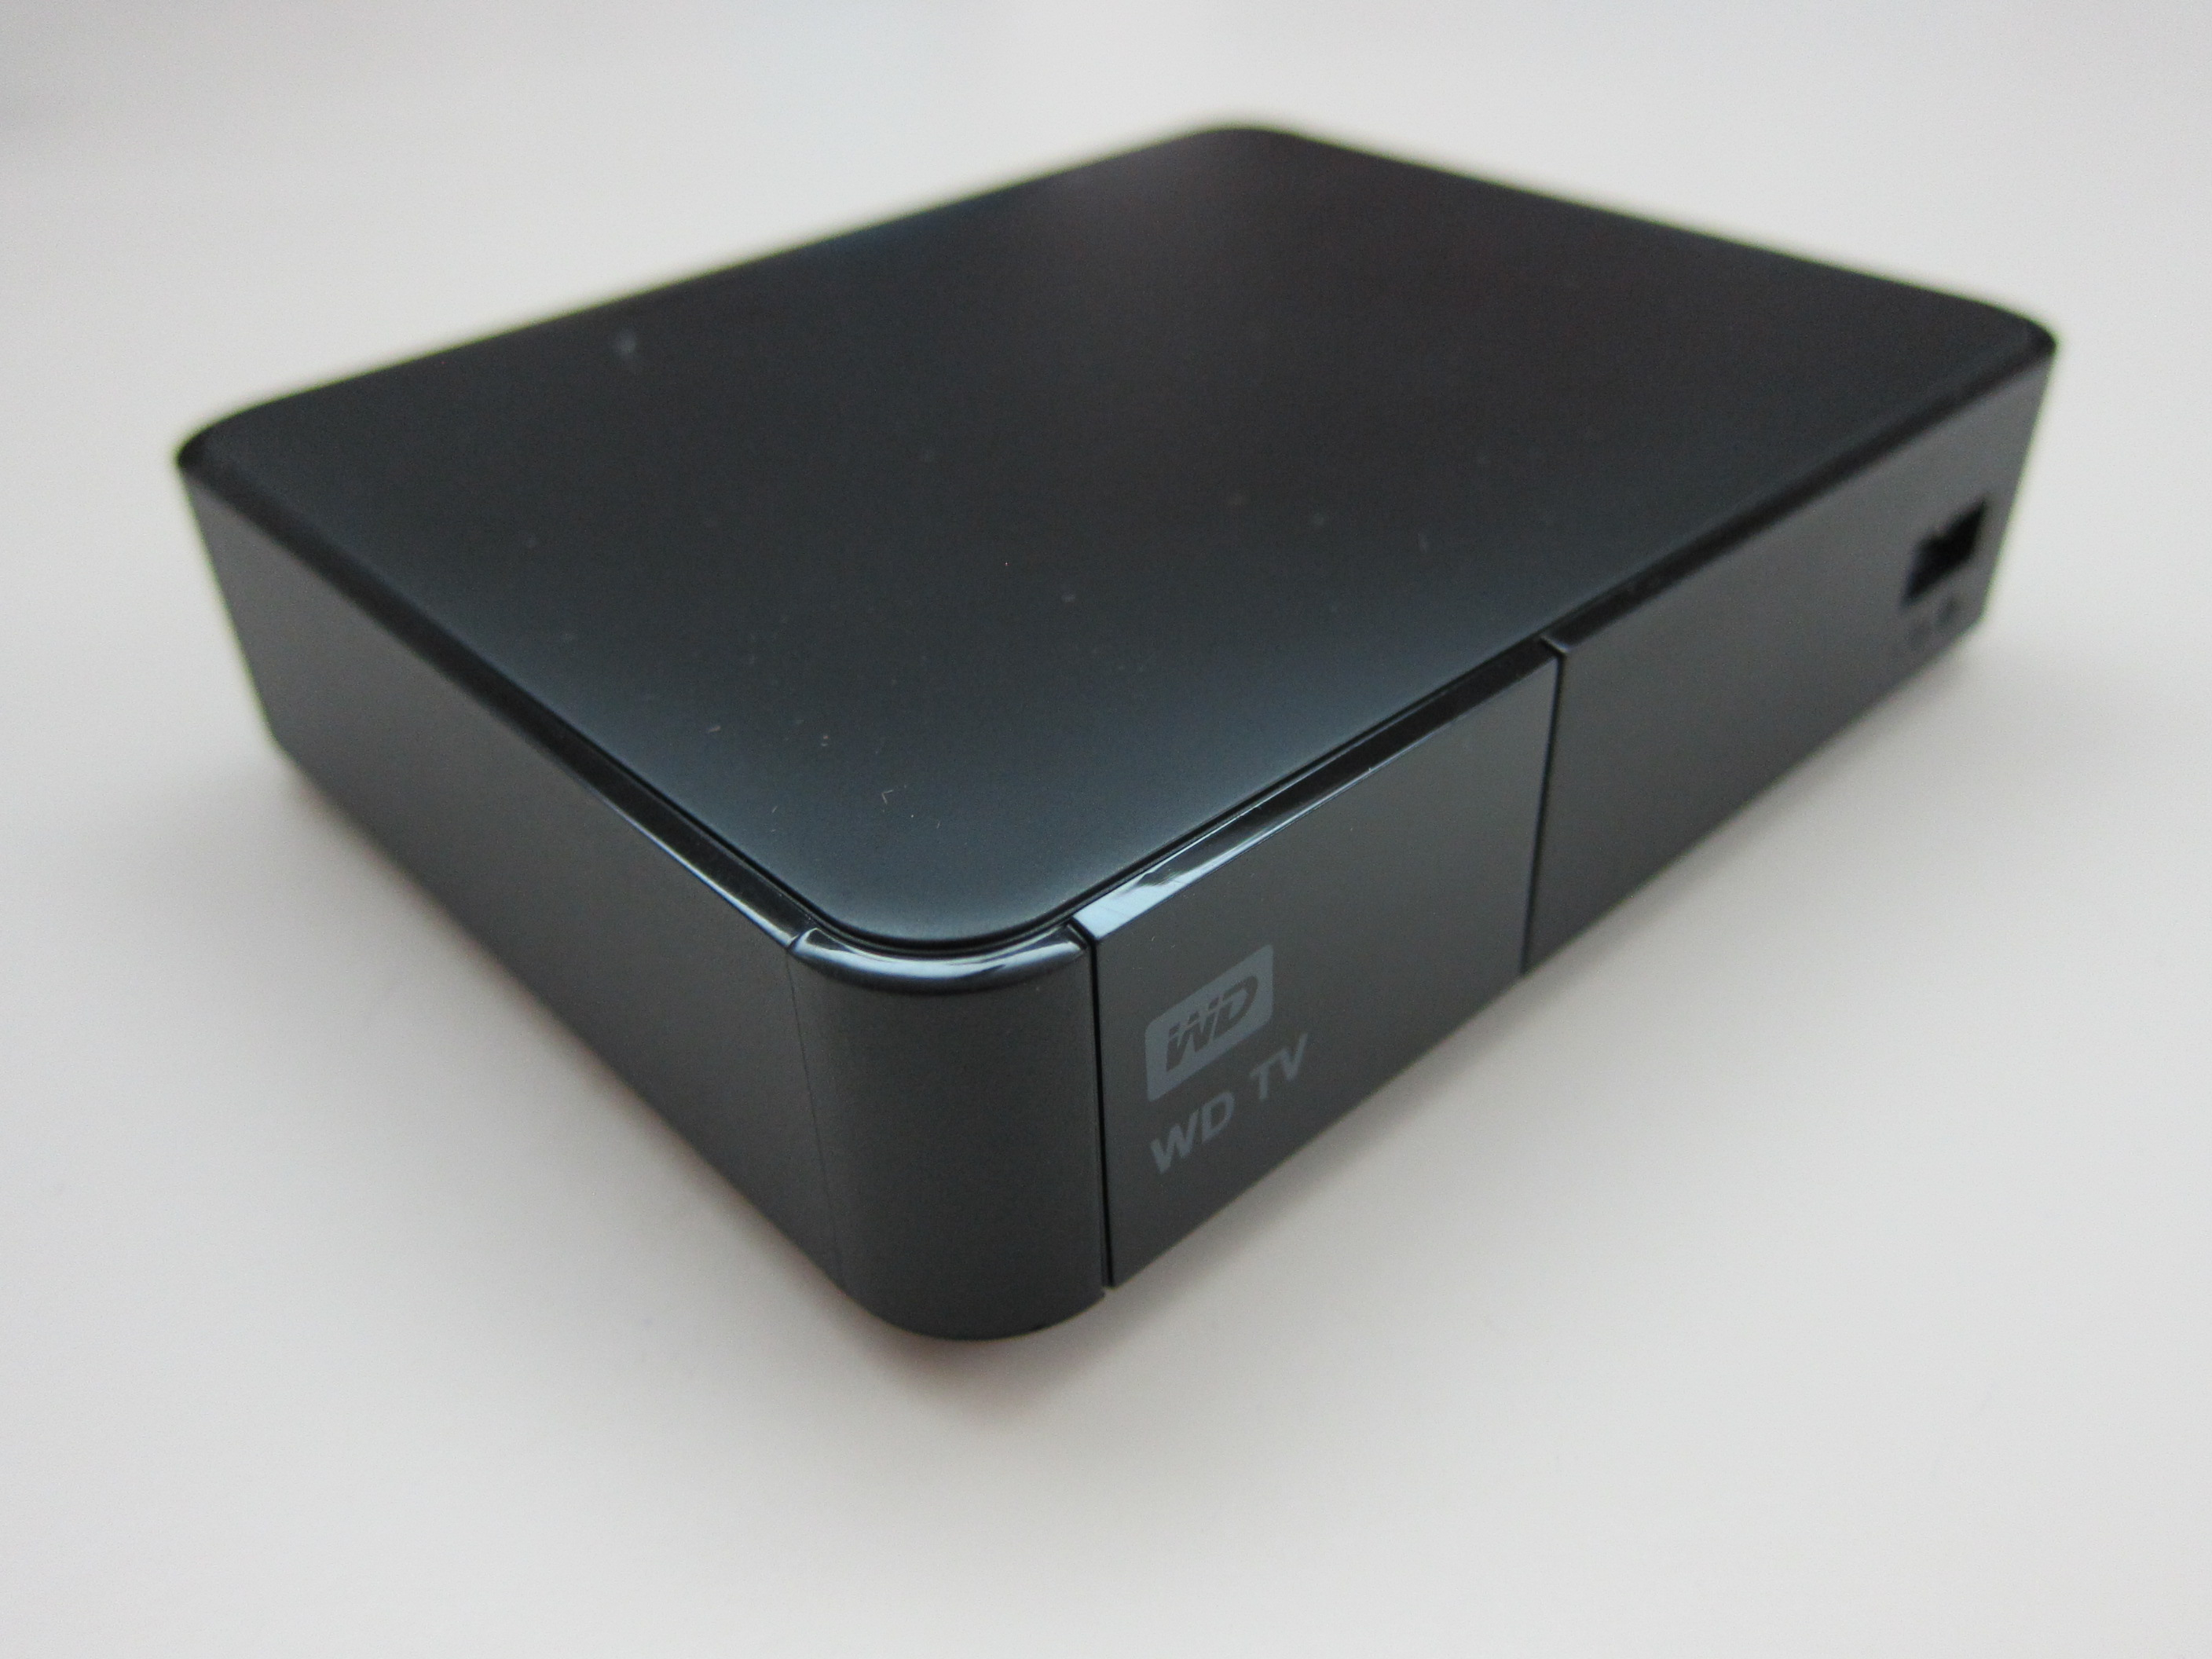 western digital wd tv media player review